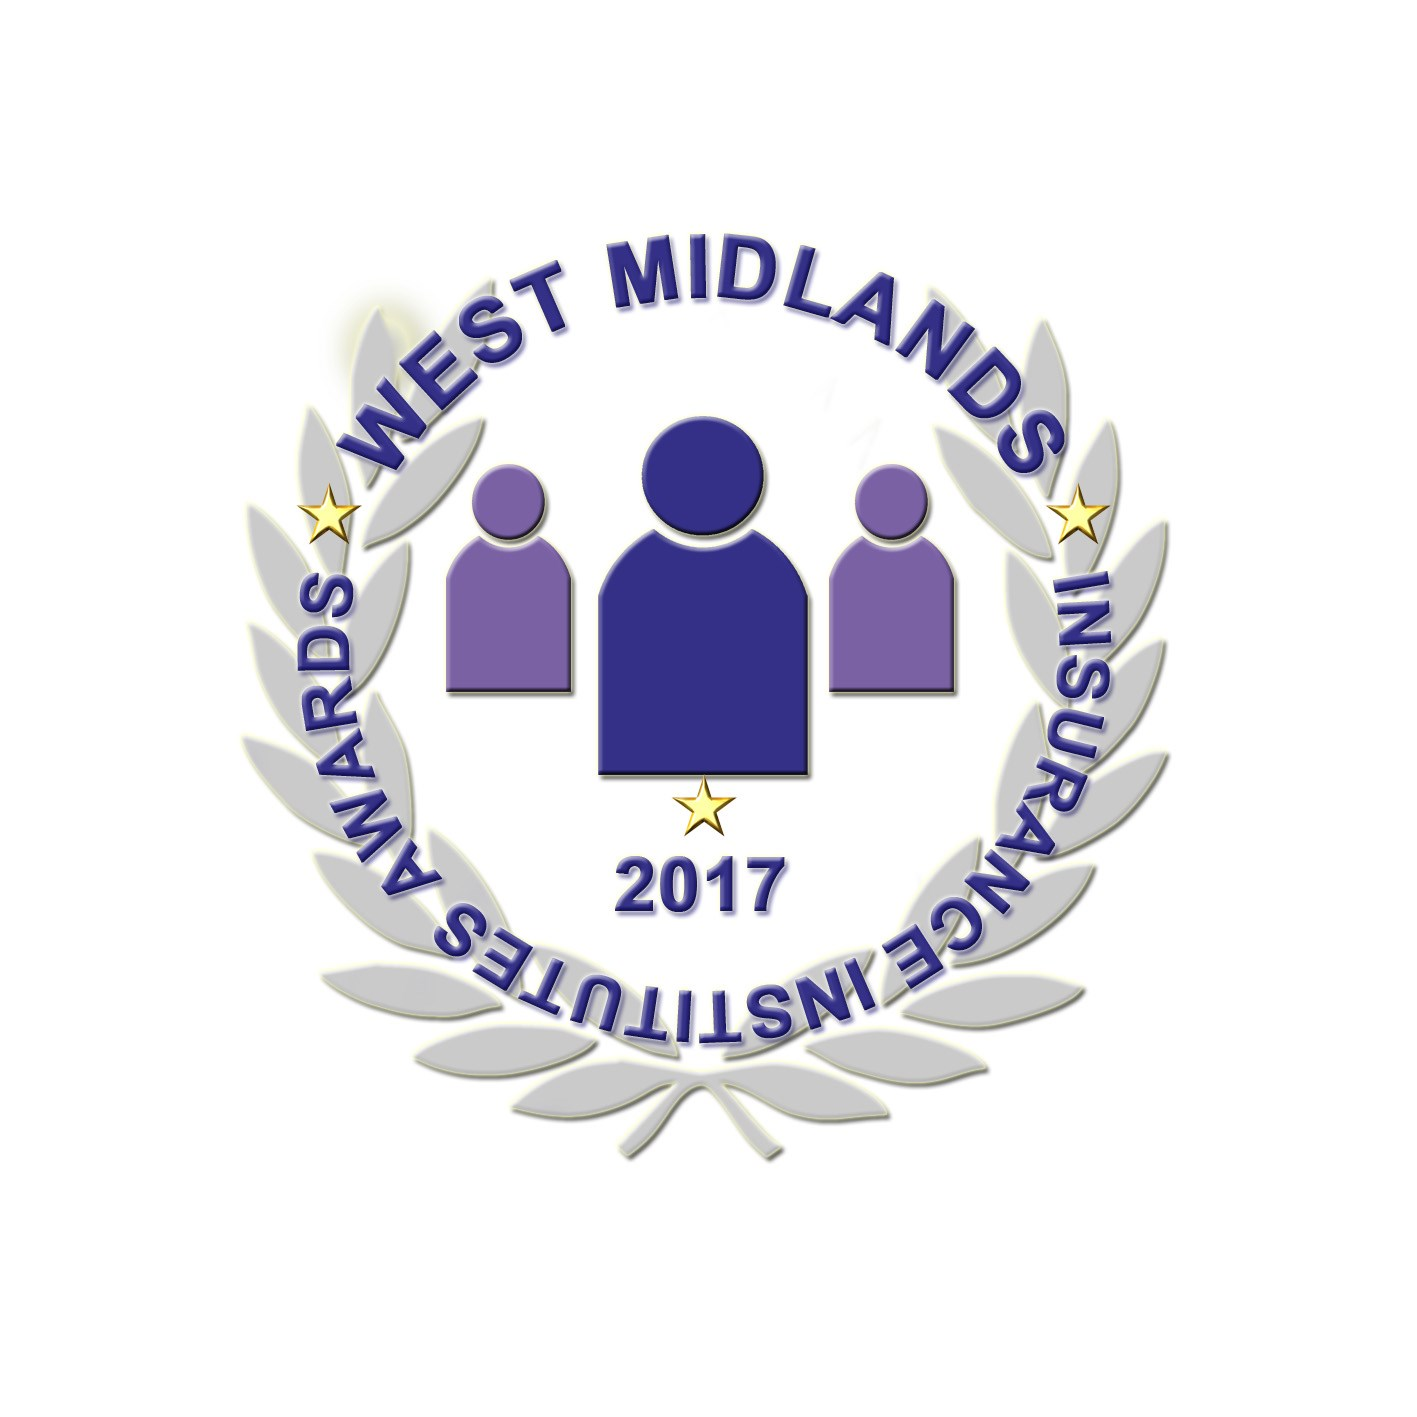 West Midlands Insurance Institutes Awards 2017